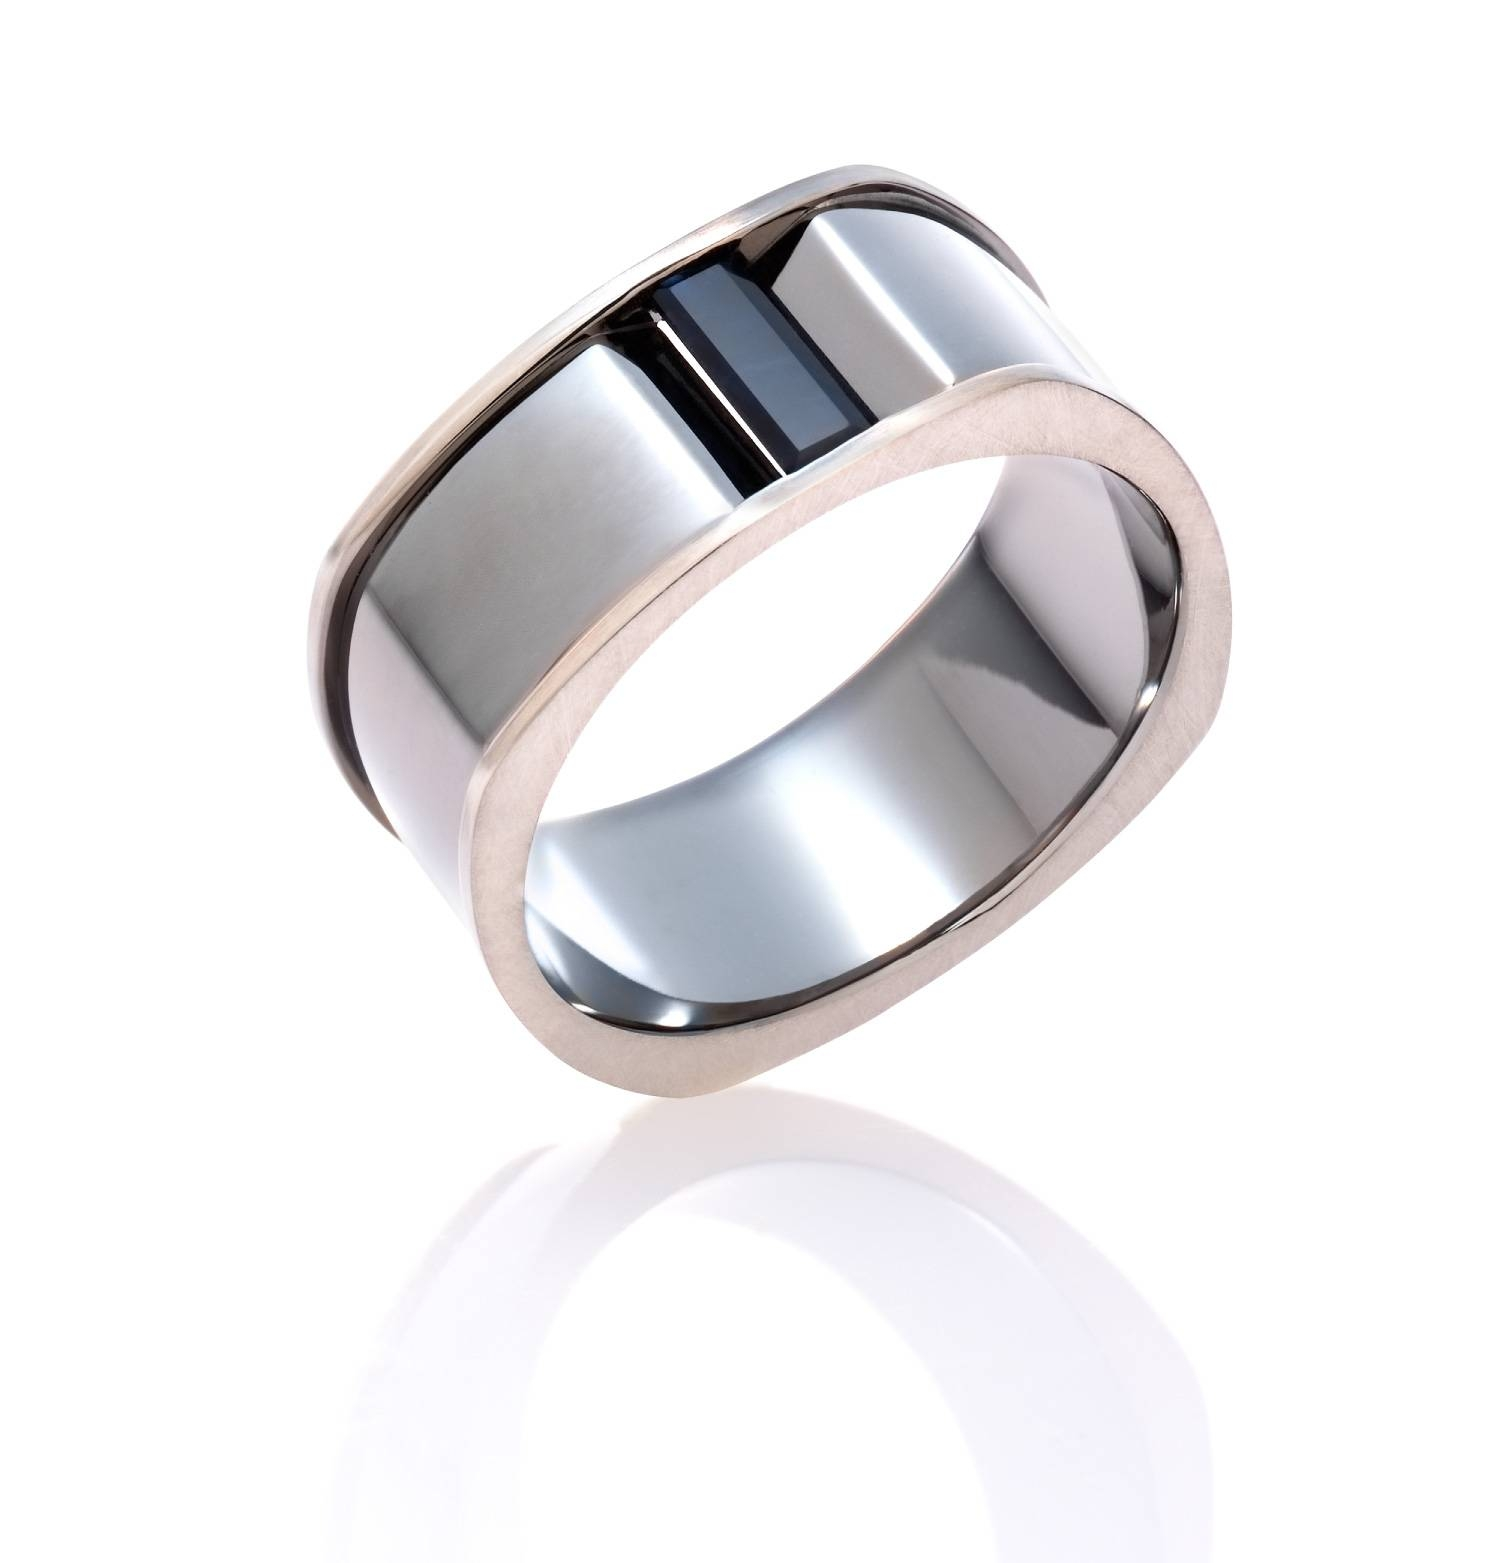 Mens Wedding Bands| Mjs Jewellery – James St Fortitude Valley With Regard To Most Current Rhodium Wedding Bands (Gallery 7 of 15)